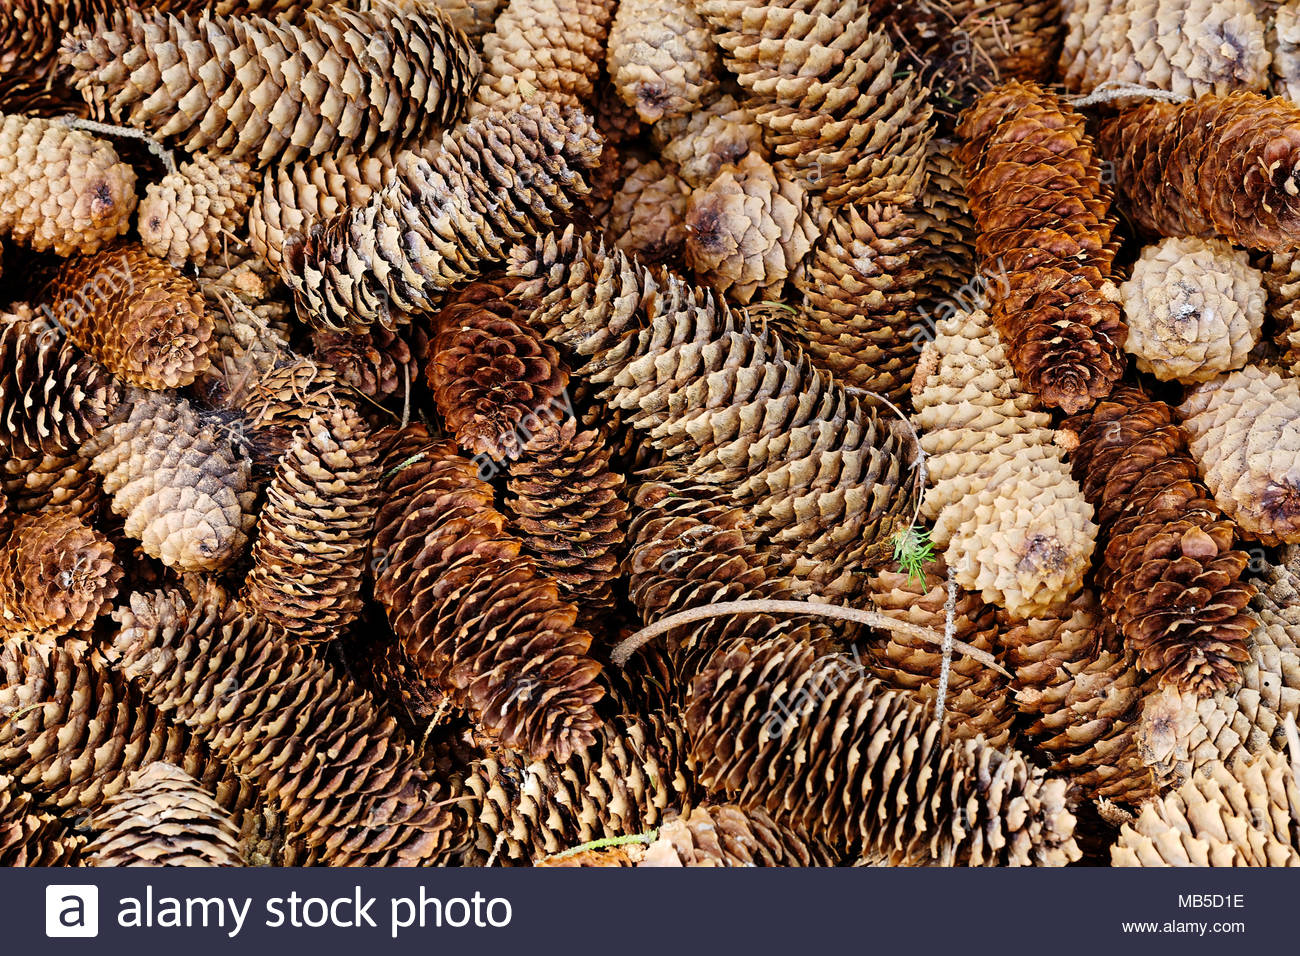 Natural pine forest ground with cones and twigs Forest soil 1300x956